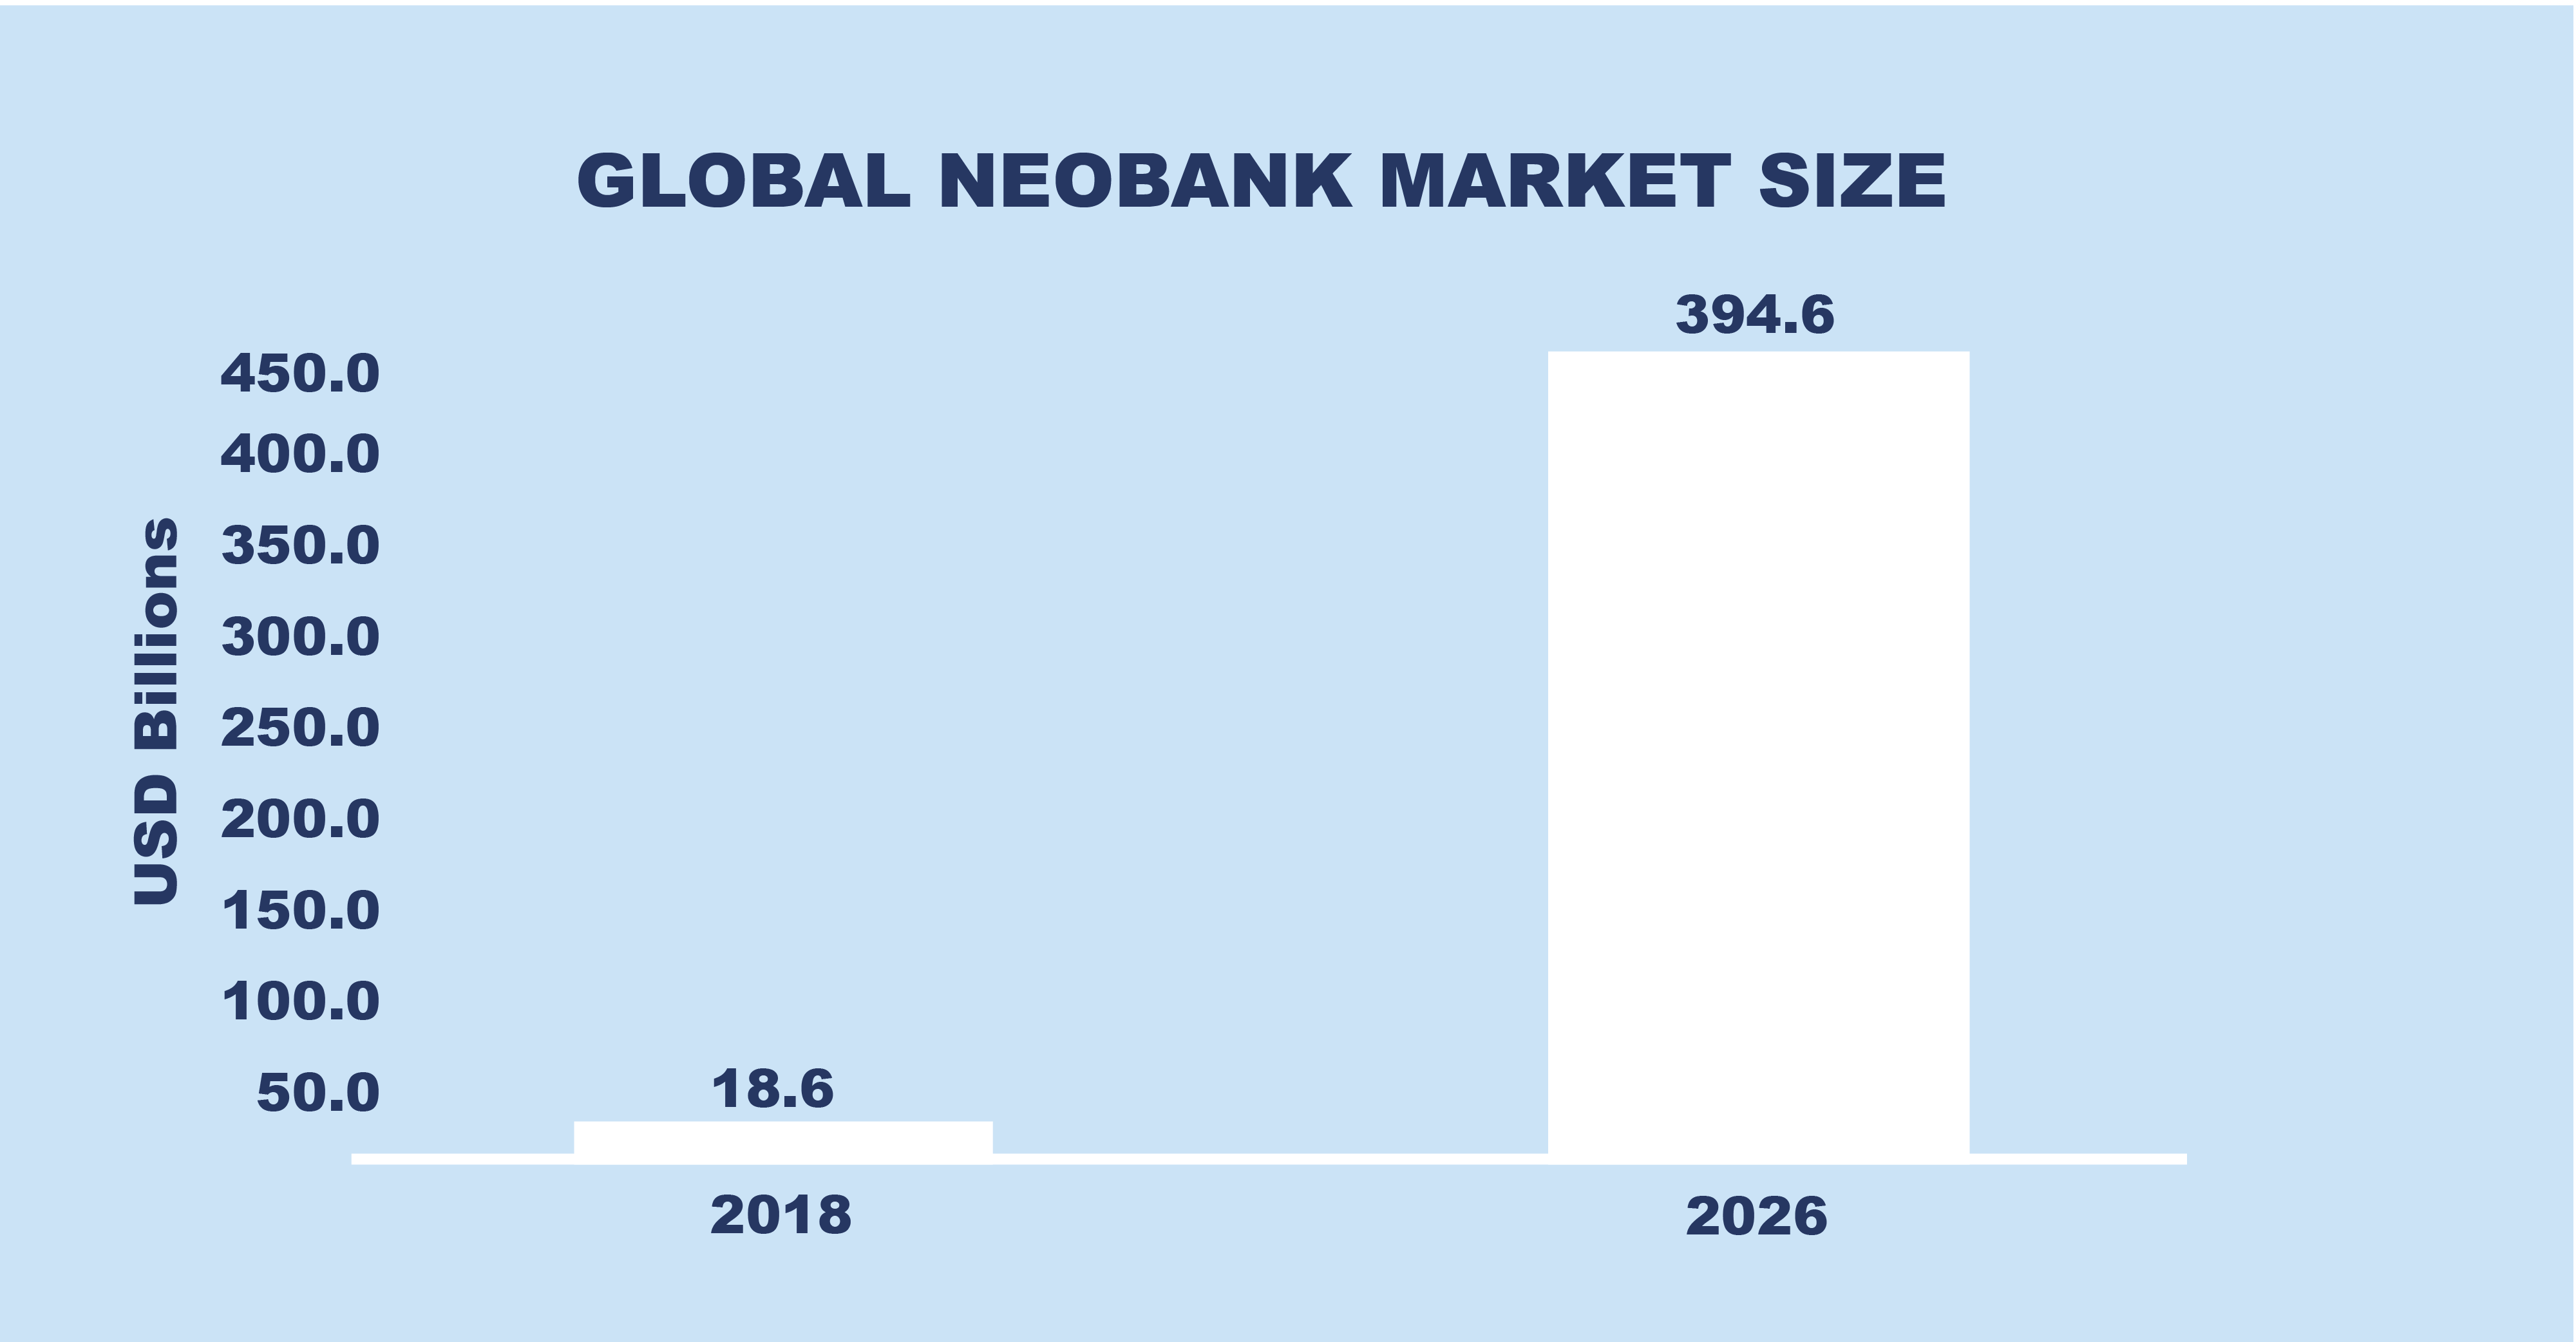 Neobank market growth worldwide